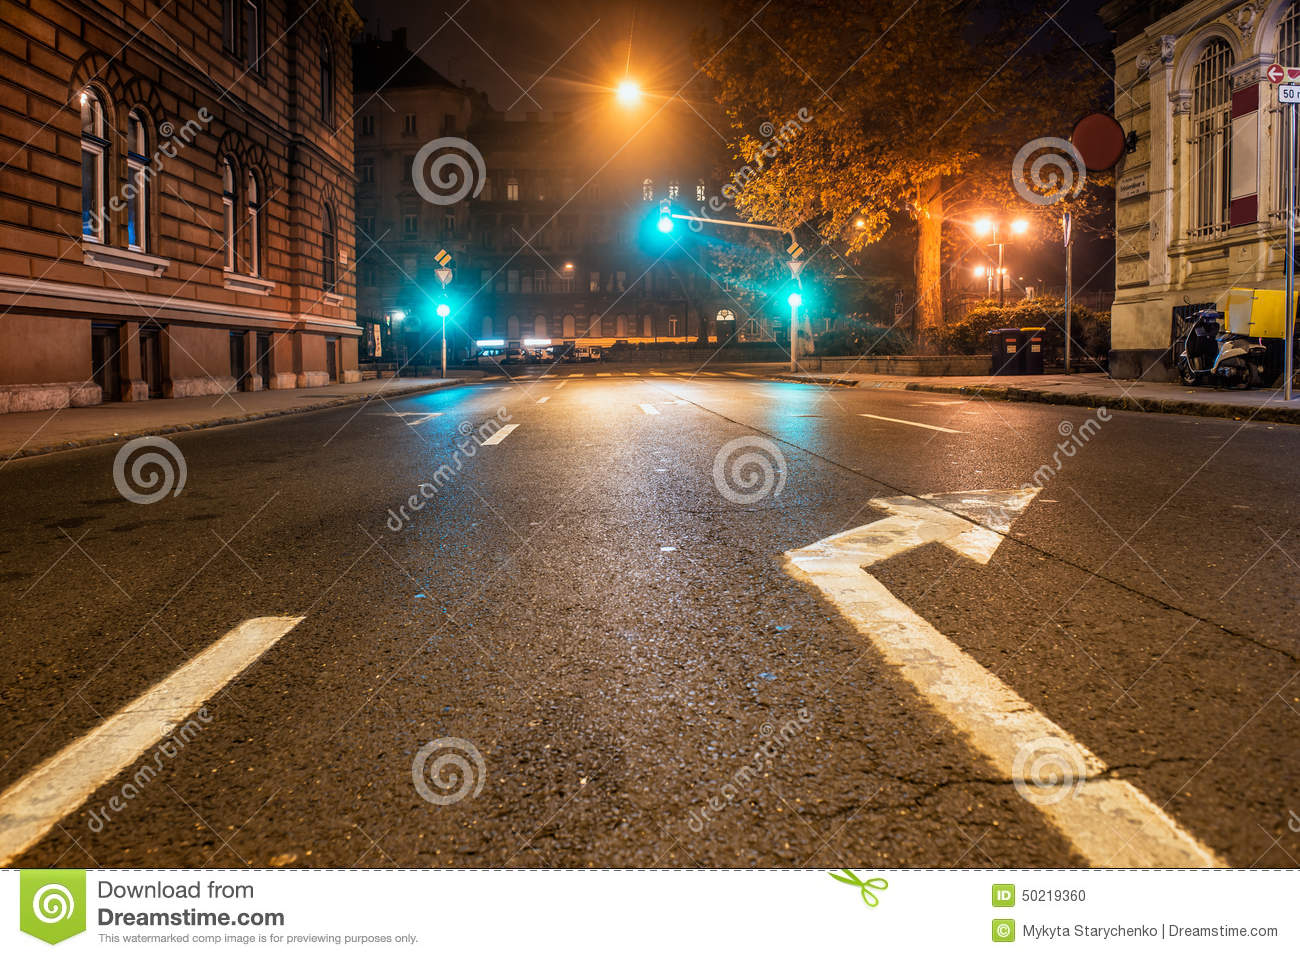 Empty Night Road With Traffic Lights Stock Photo - Image: 50219360 for Traffic Light On Road At Night  111ane